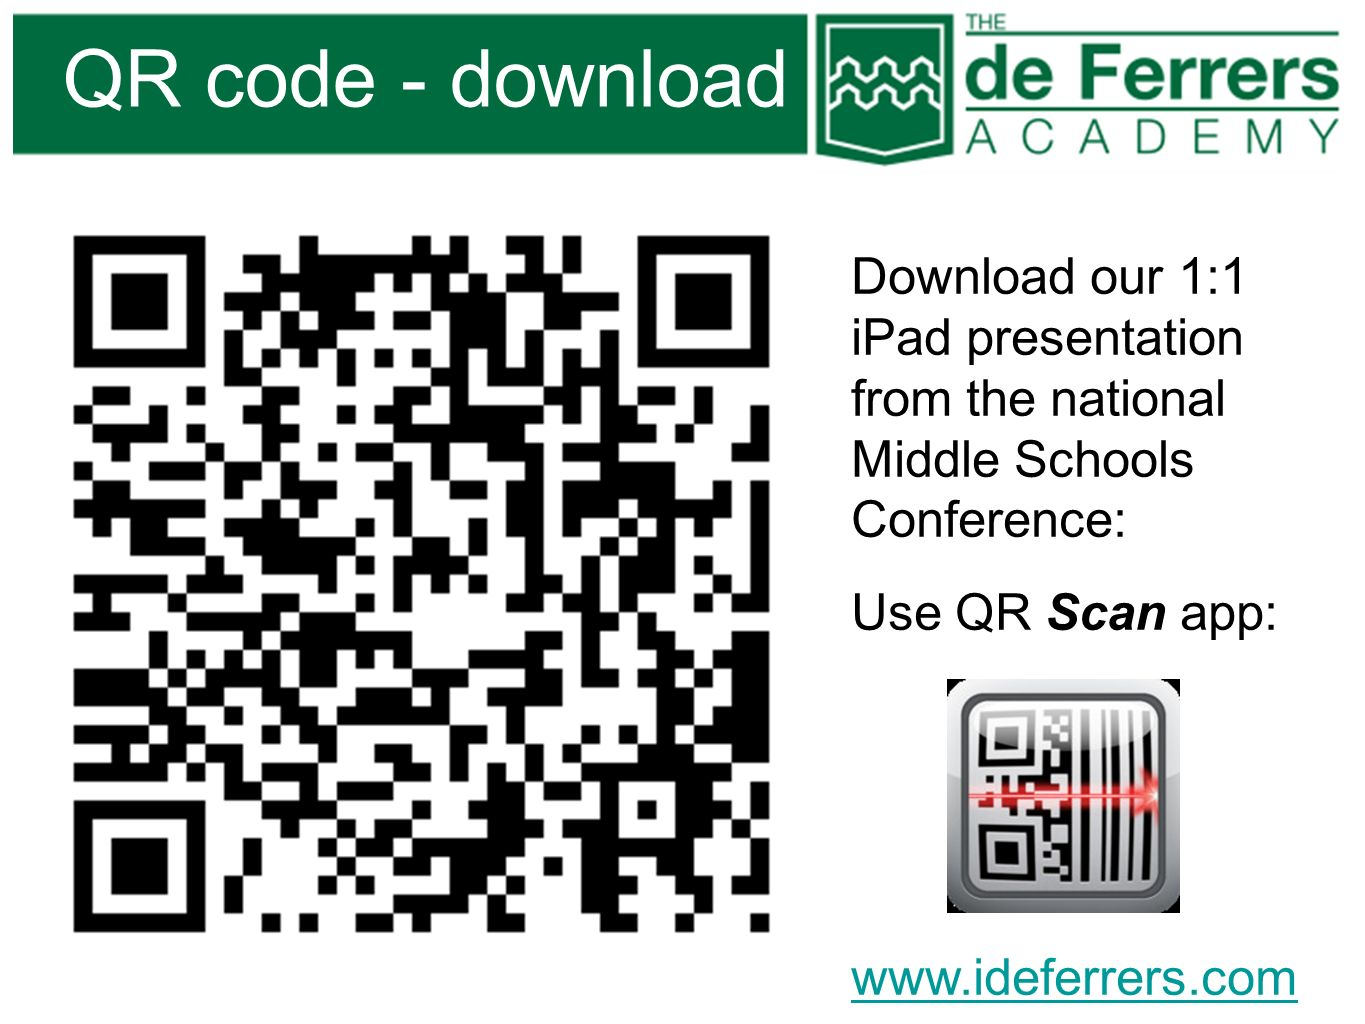 QR code - download Download our 1:1 iPad presentation from the national Middle Schools Conference: Use QR Scan app: www.ideferrers.com